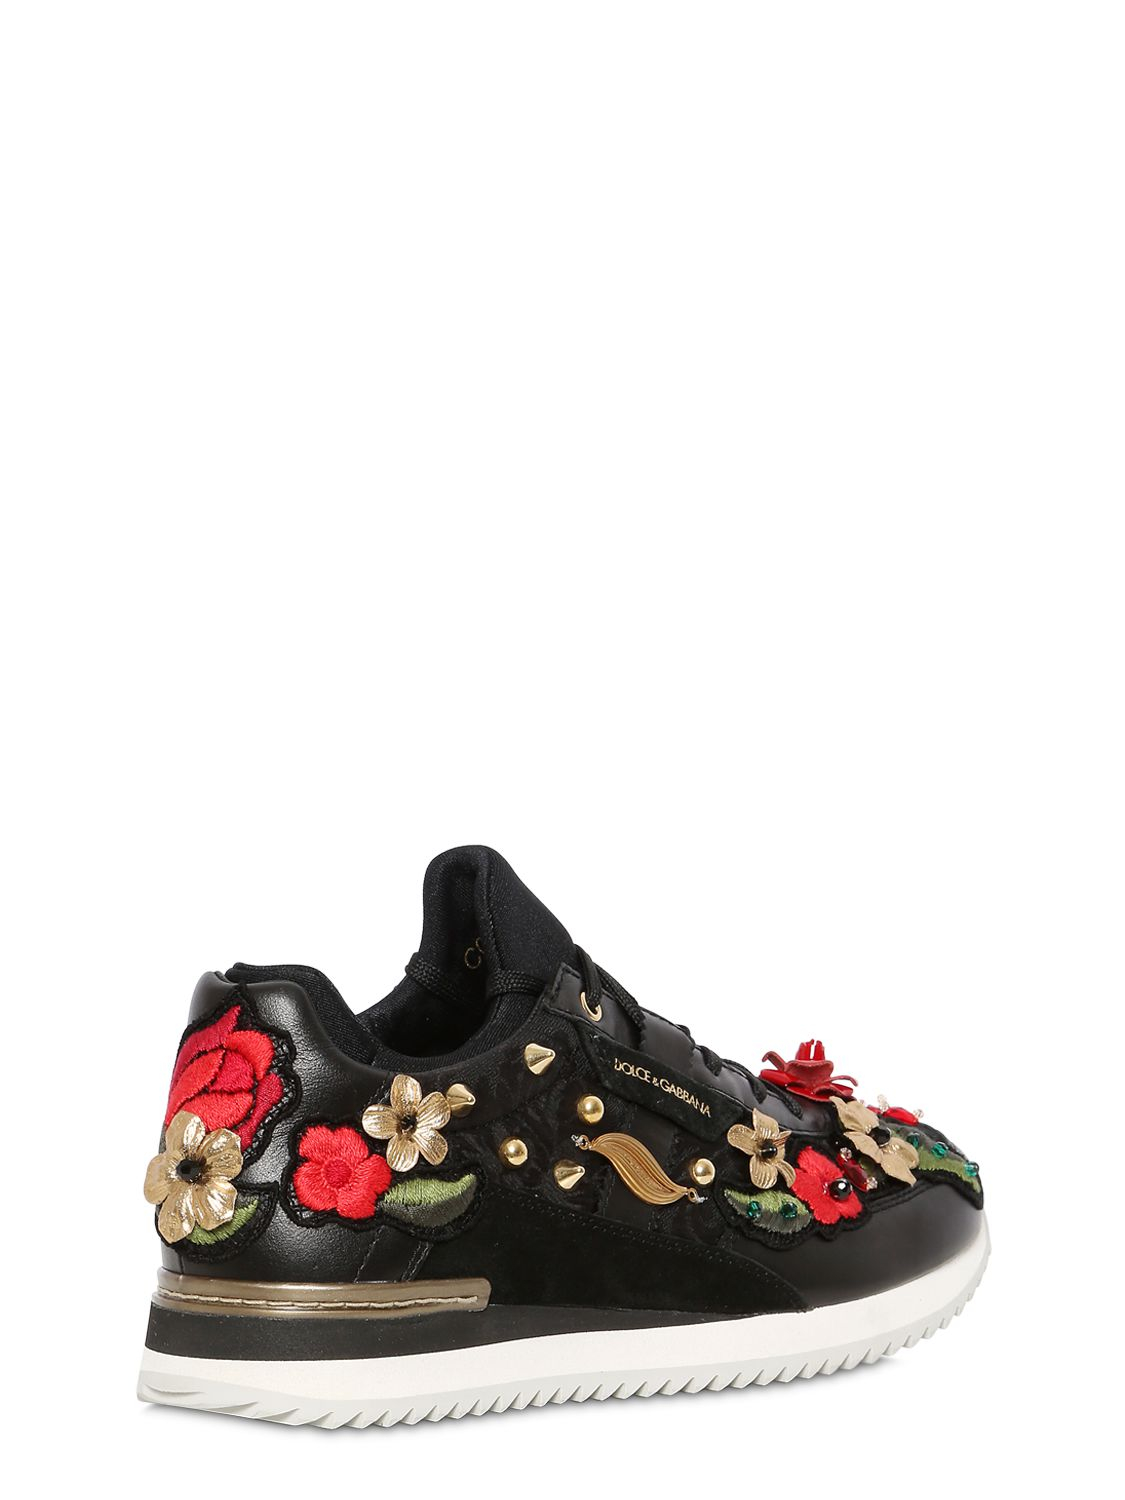 lyst dolce gabbana jacquard nappa leather sneakers. Black Bedroom Furniture Sets. Home Design Ideas